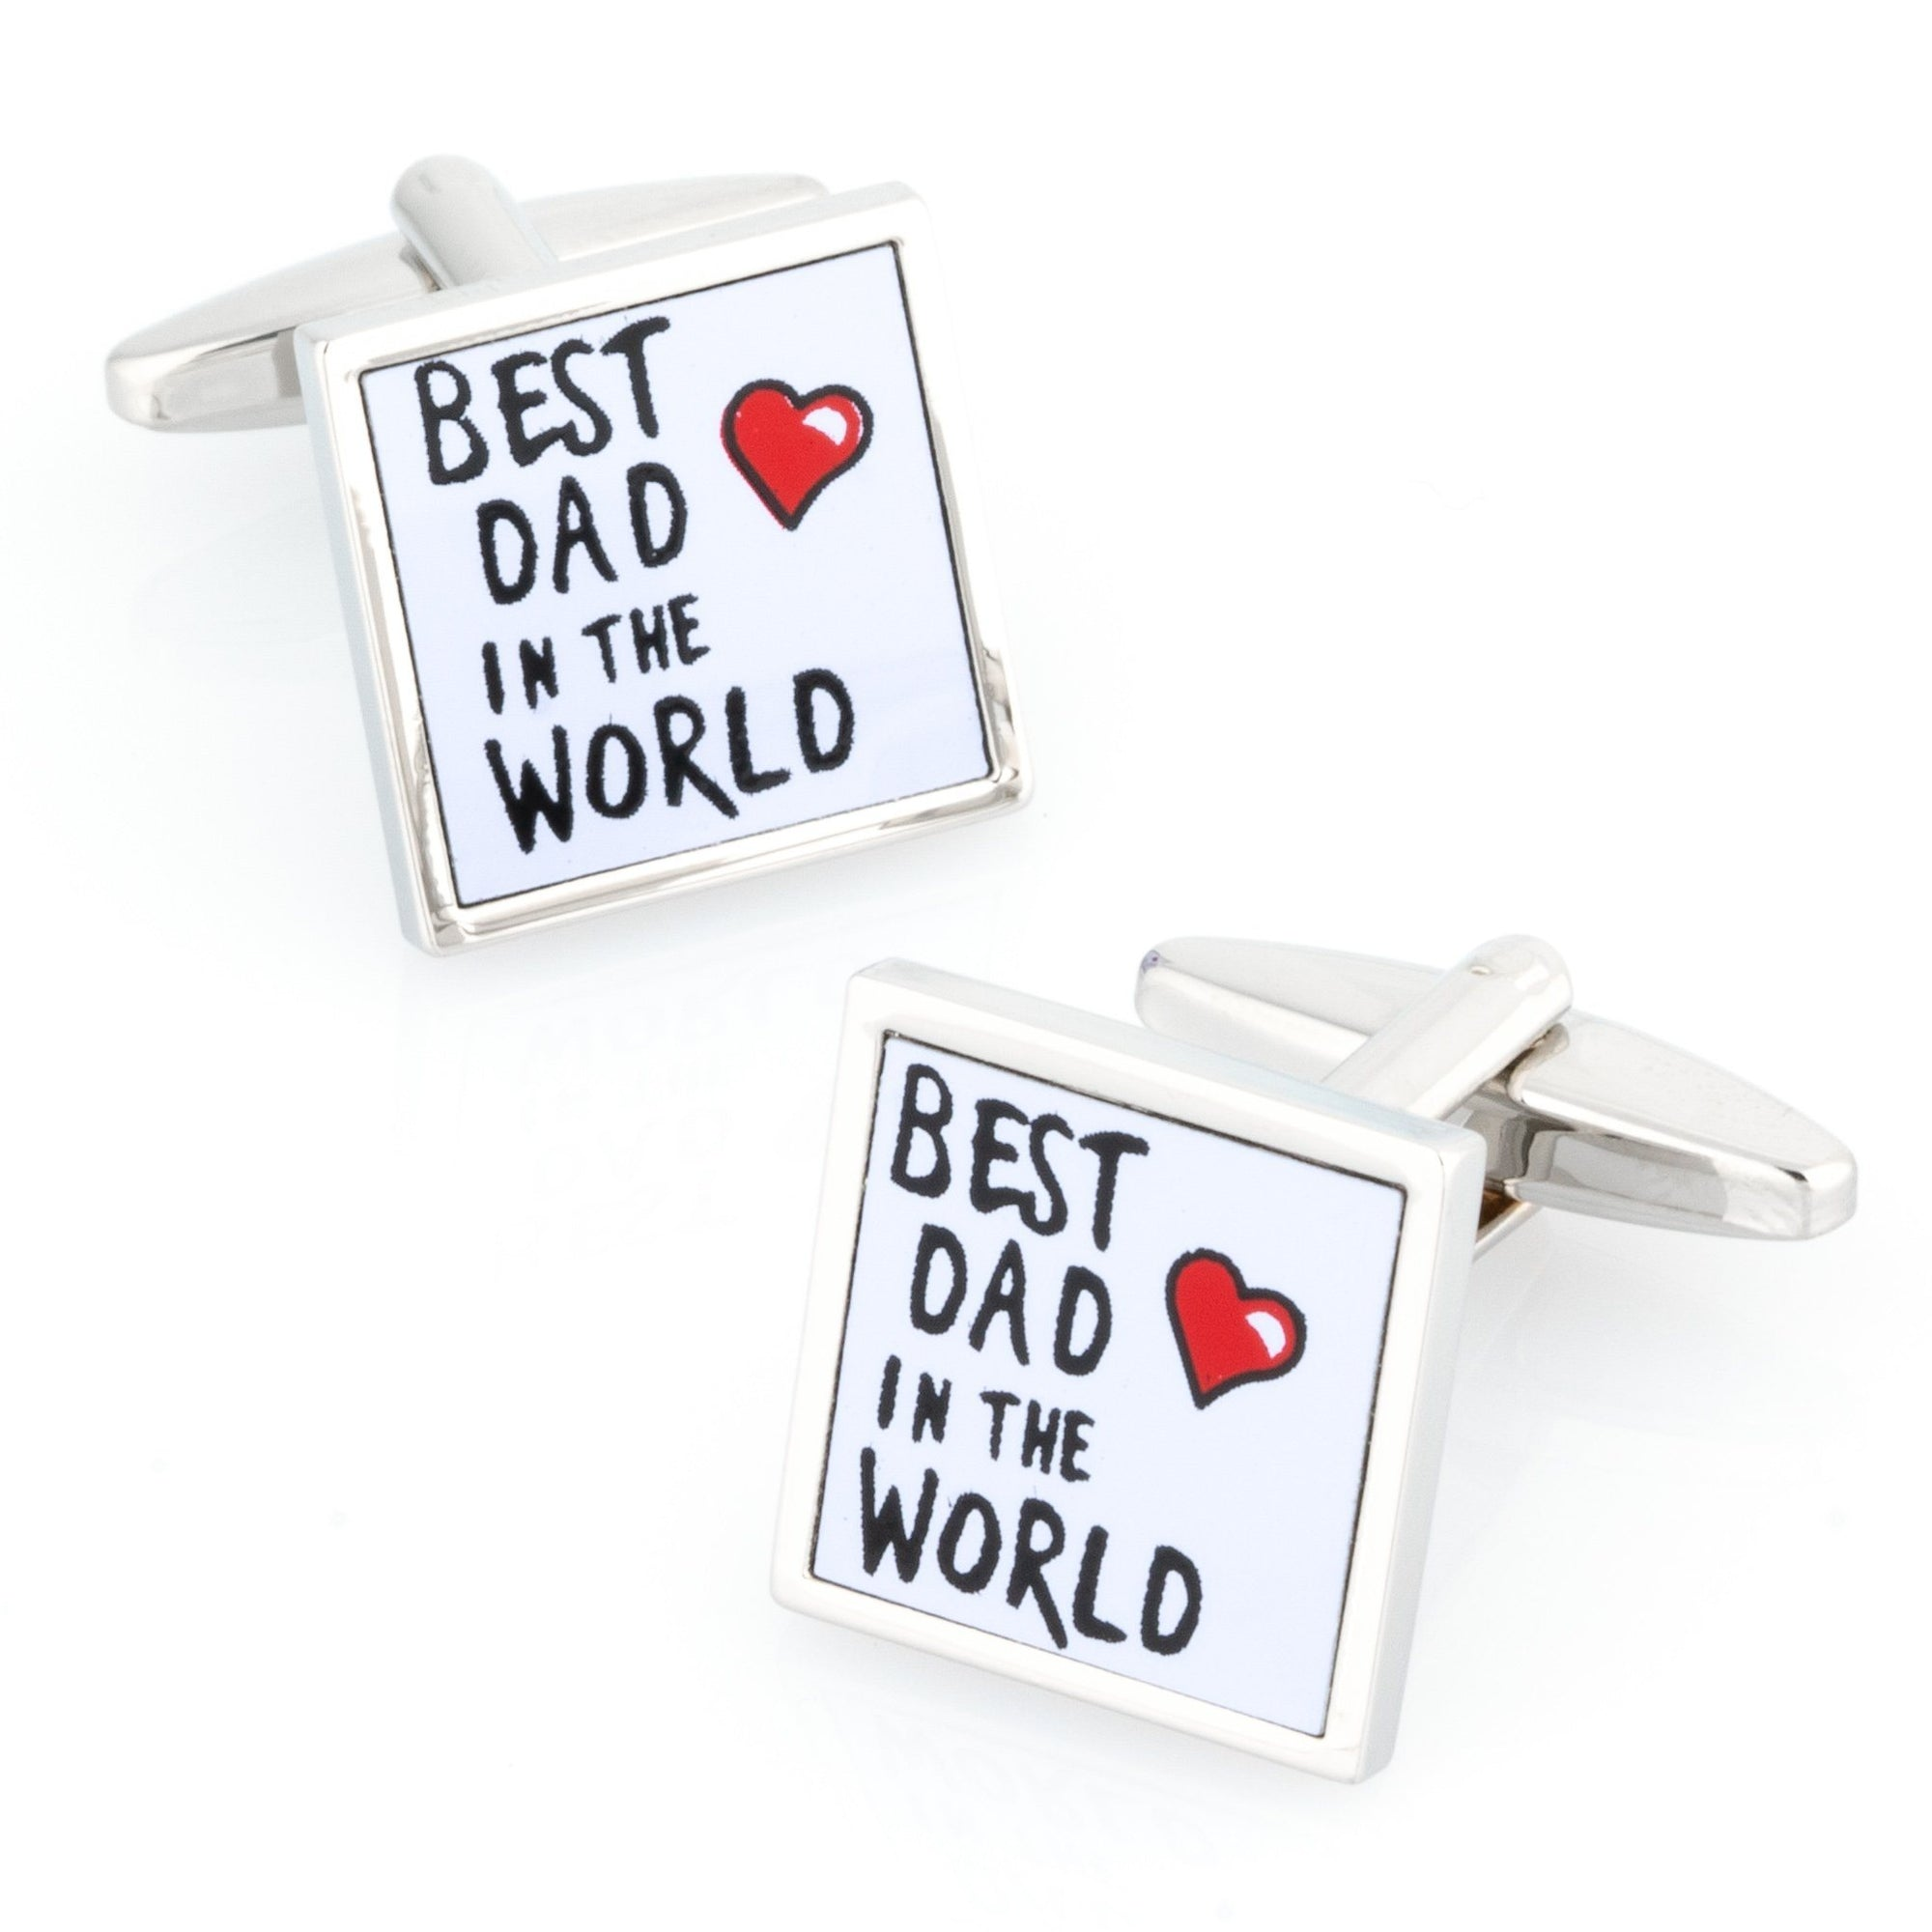 Best Dad in the World Cufflinks , Novelty Cufflinks , CL8441 , Mens Cufflinks , Cufflinks , Cuffed , Clinks , Clinks Australia